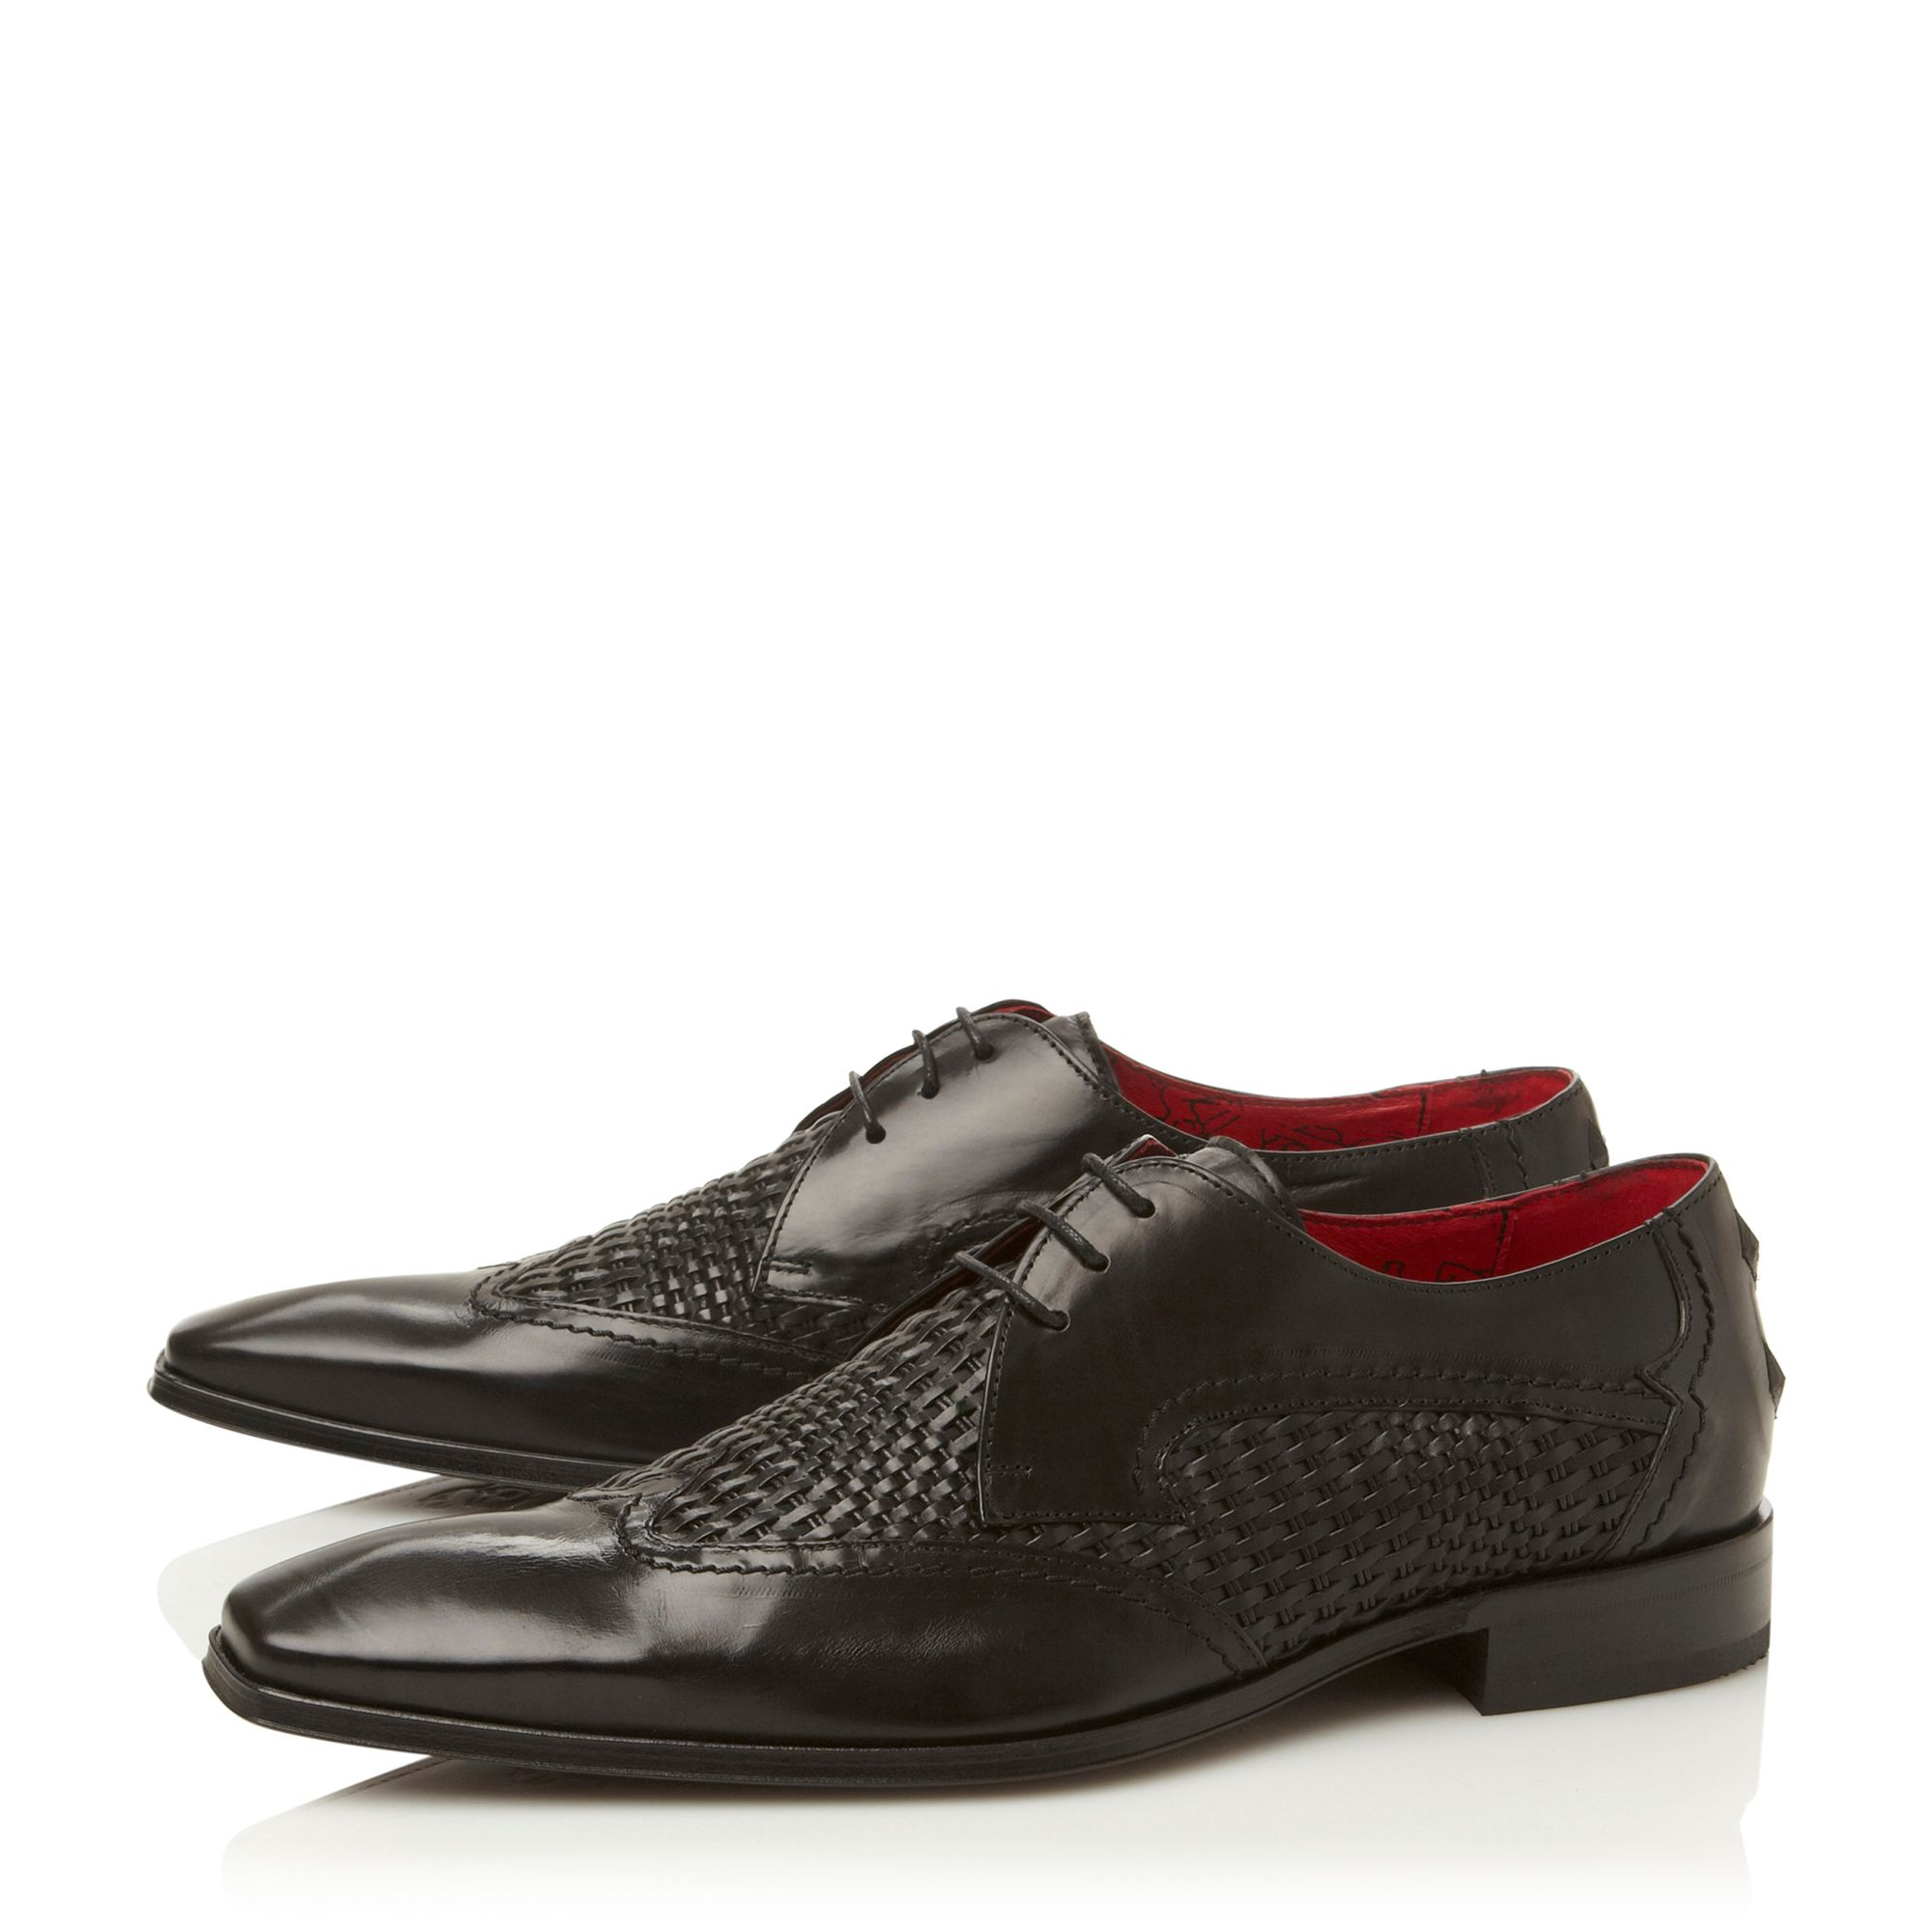 J748 lace up weave vamp wingtip shoes